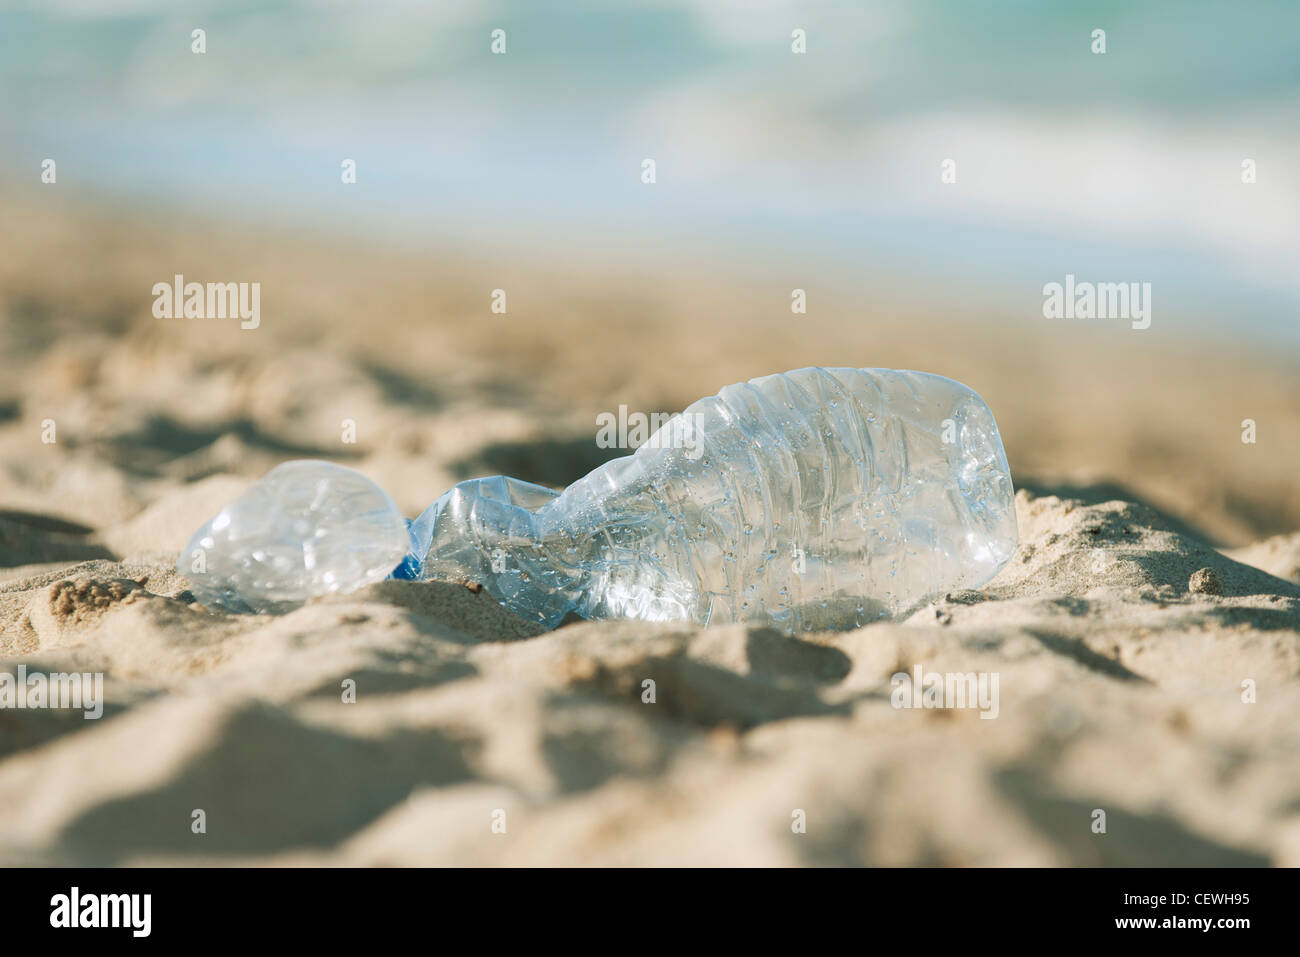 Empty plastic bottle on beach, selective focus - Stock Image